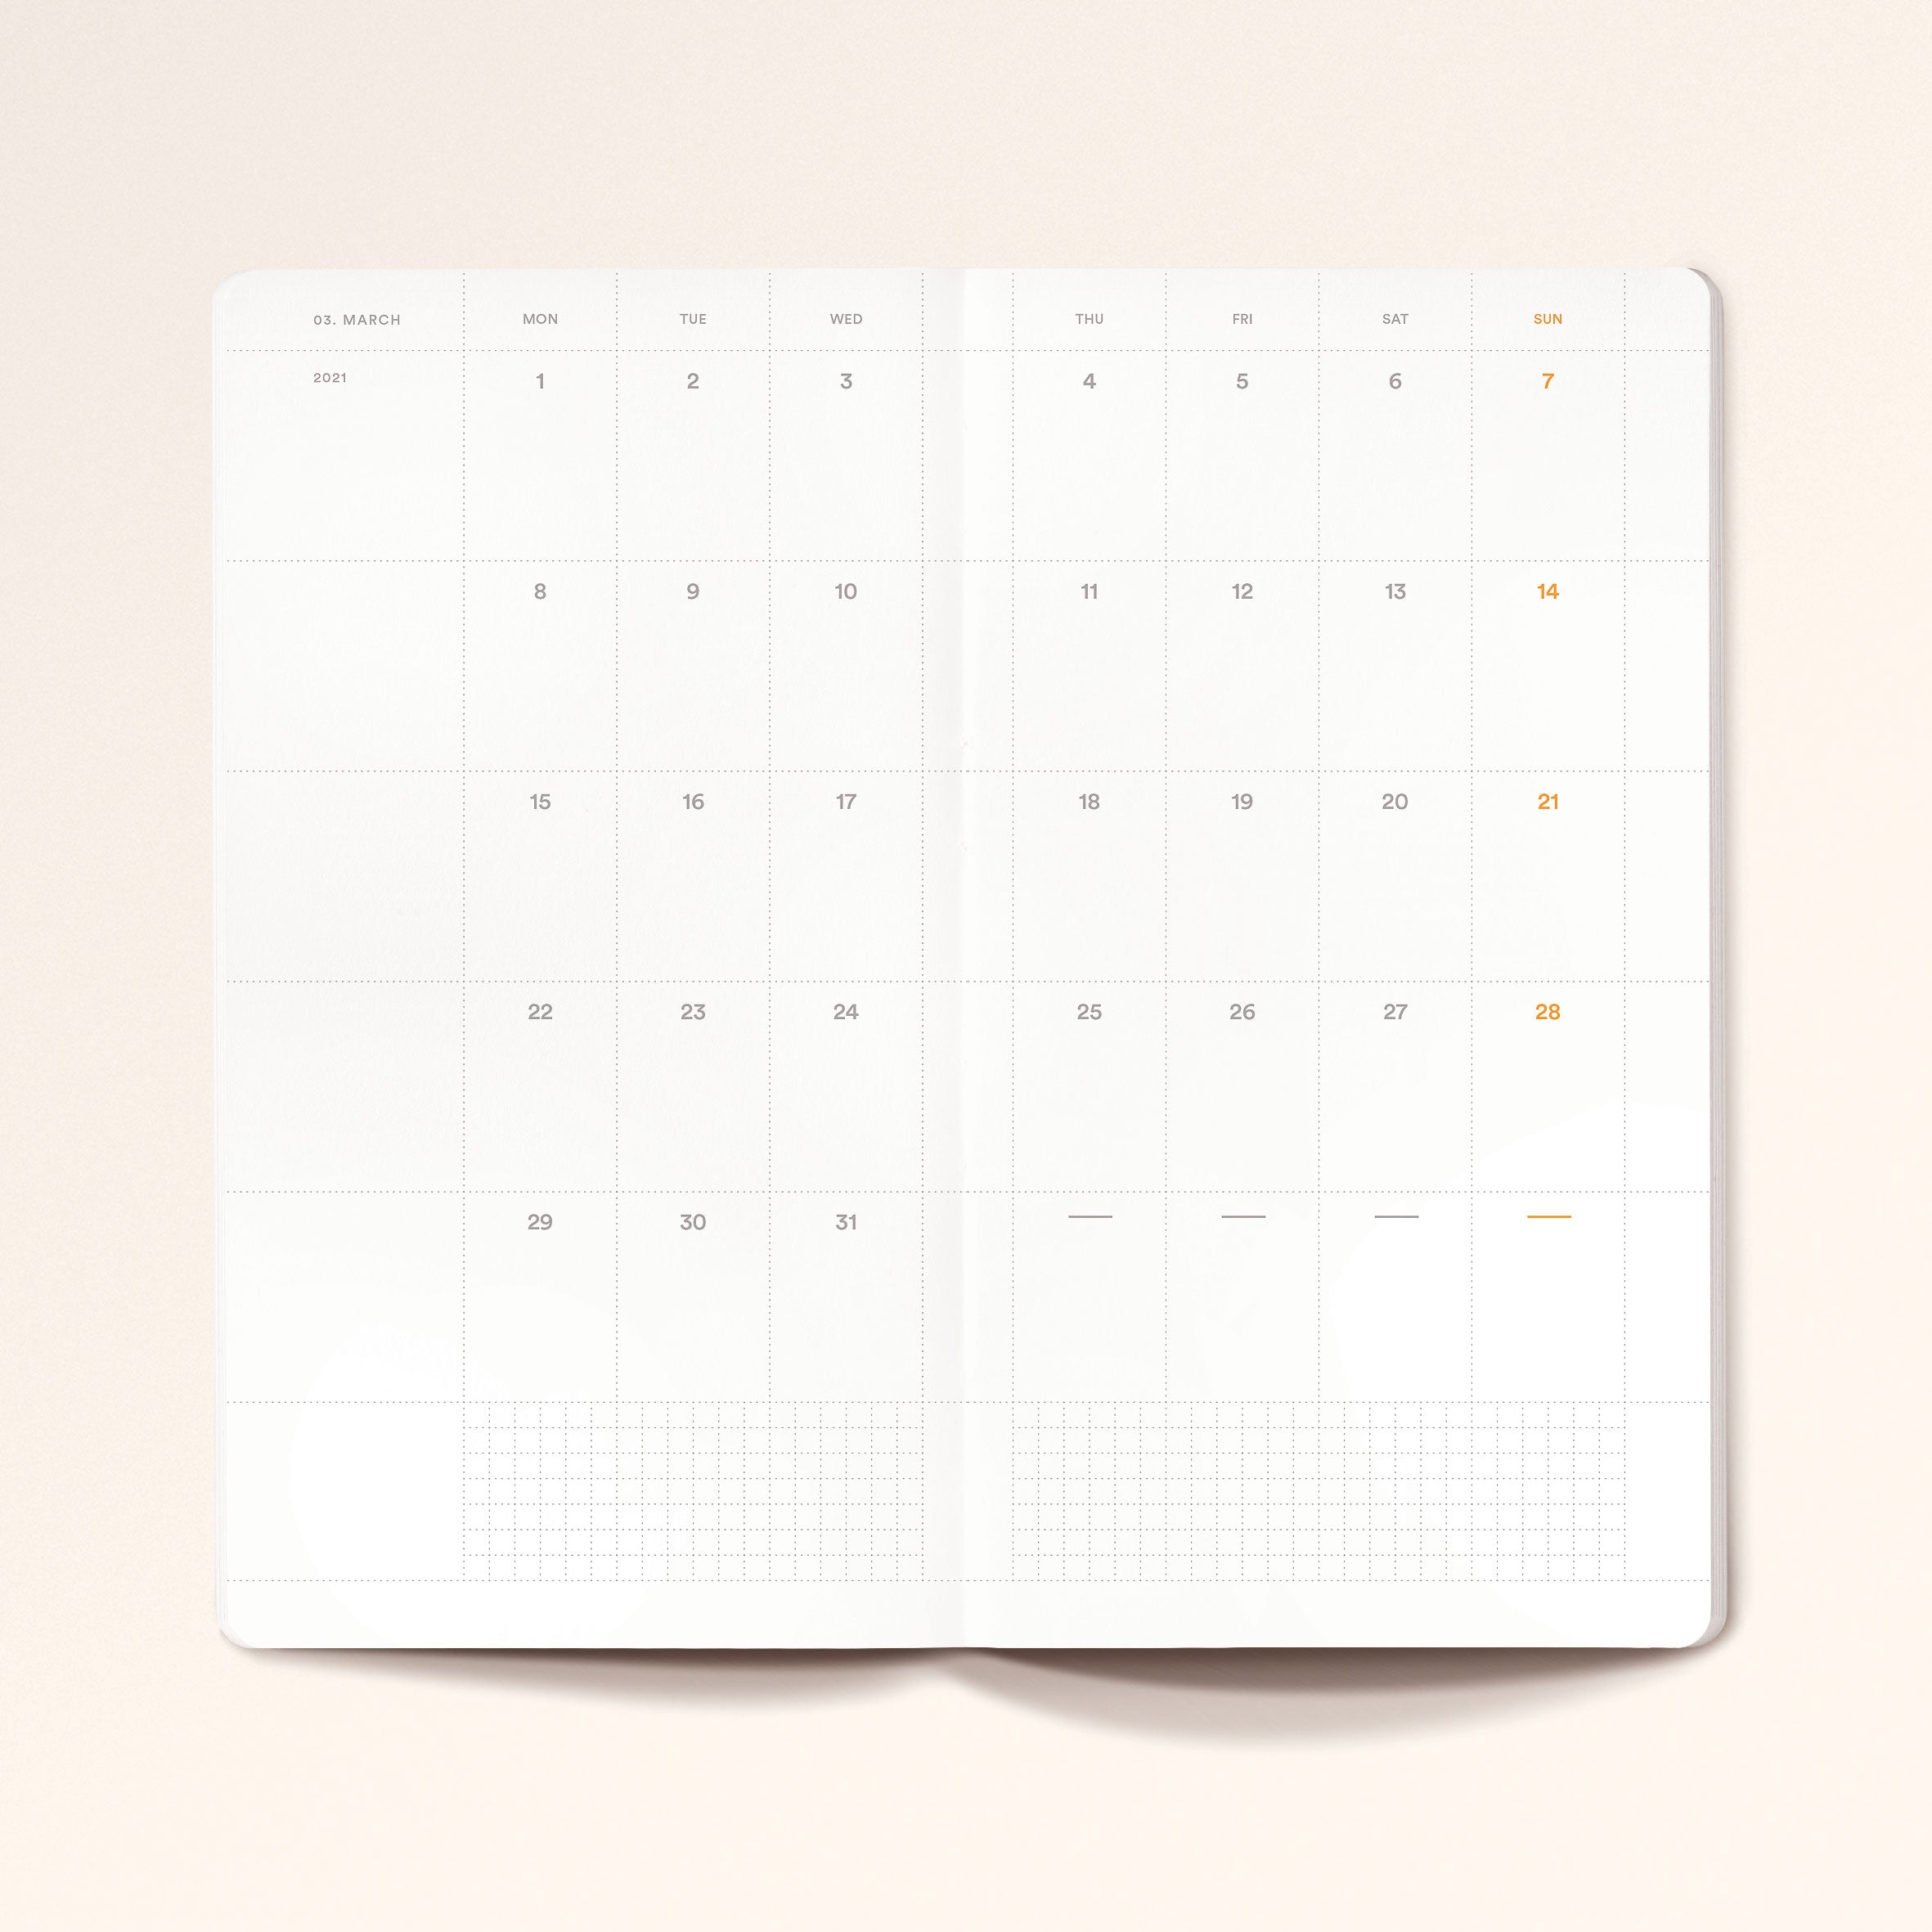 """Untitled 04"" by Anna Chask. 2021 Weekly planner Traveler's Slim Size. 100% Cotton Paper. Vol. 1 & 2."